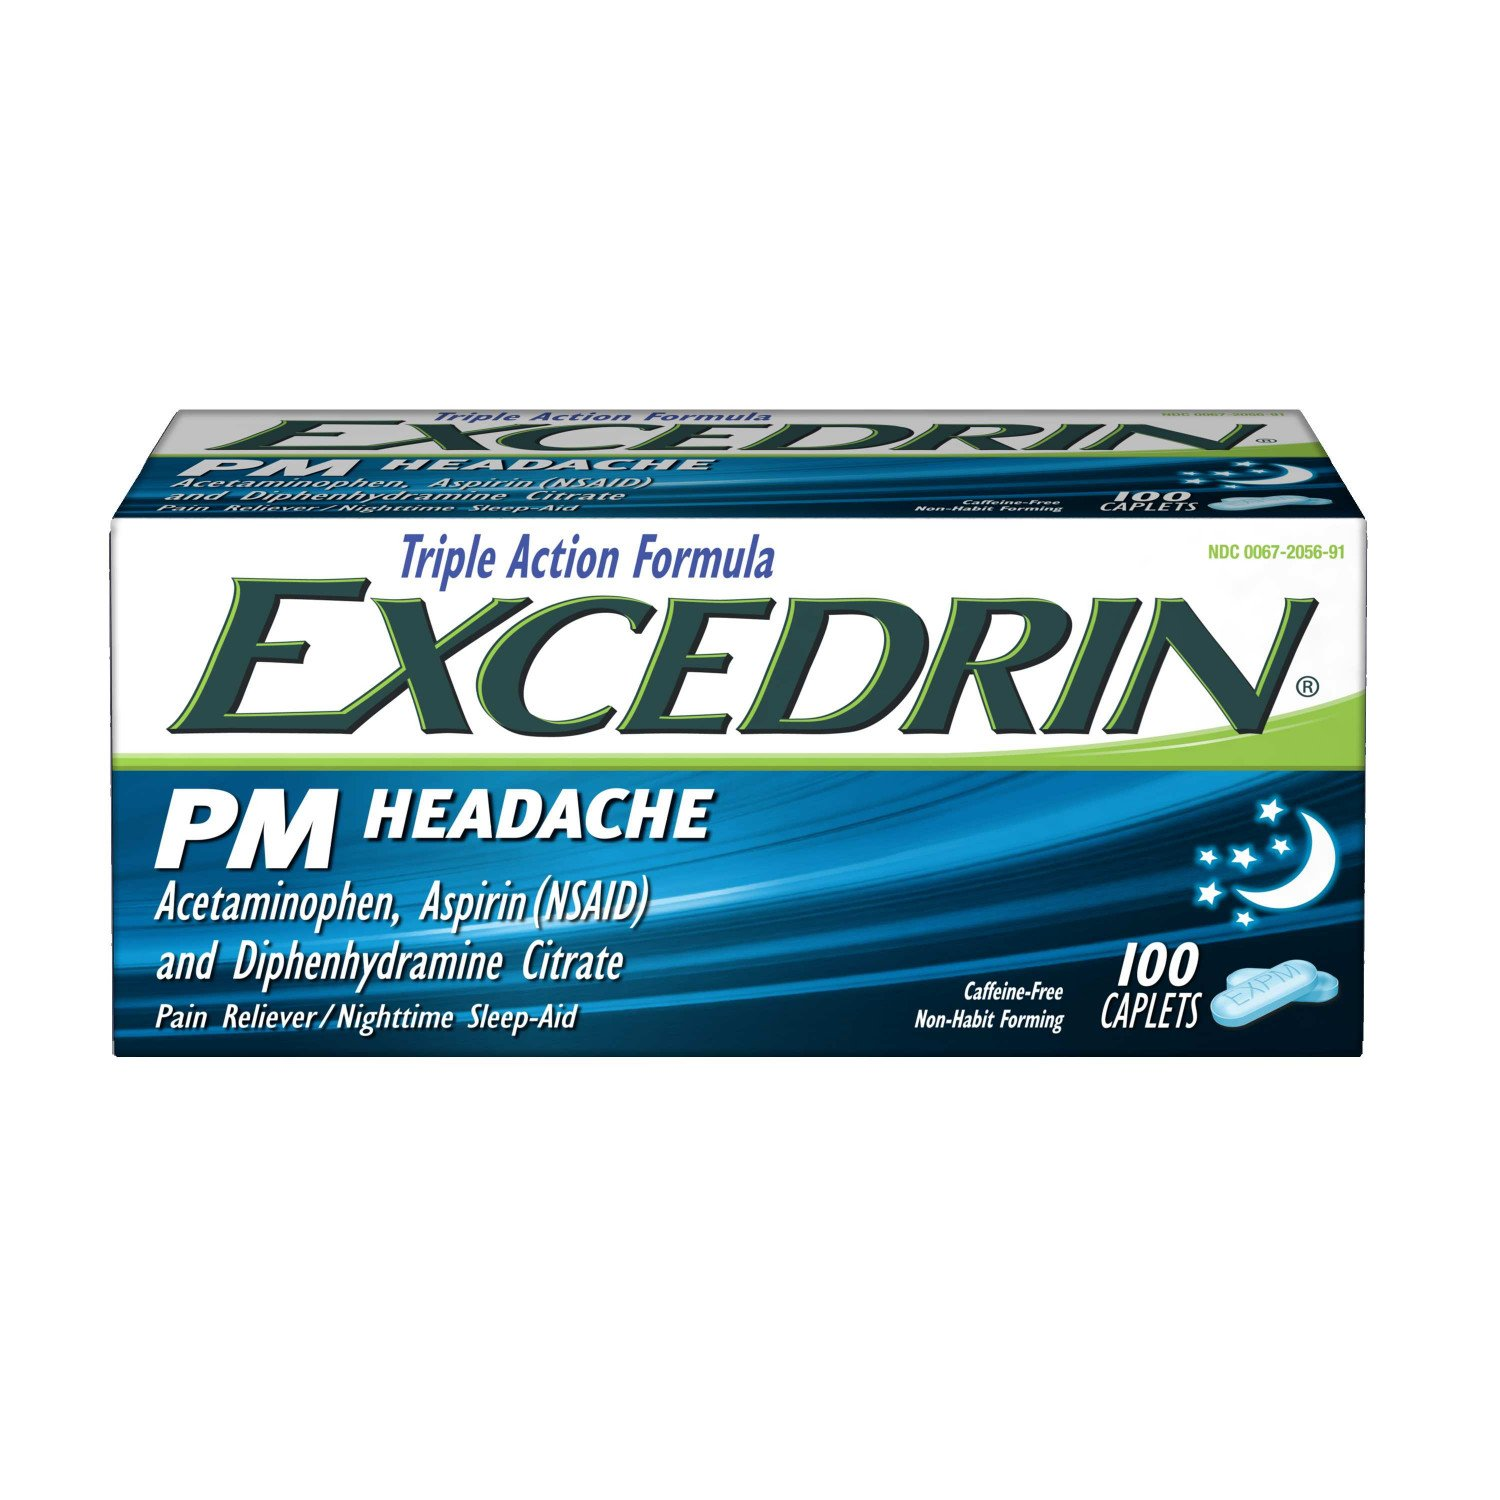 Excedrin PM Caffeine-Free Caplets for Headache Pain Relief and Nighttime Sleep-Aid, 100 count